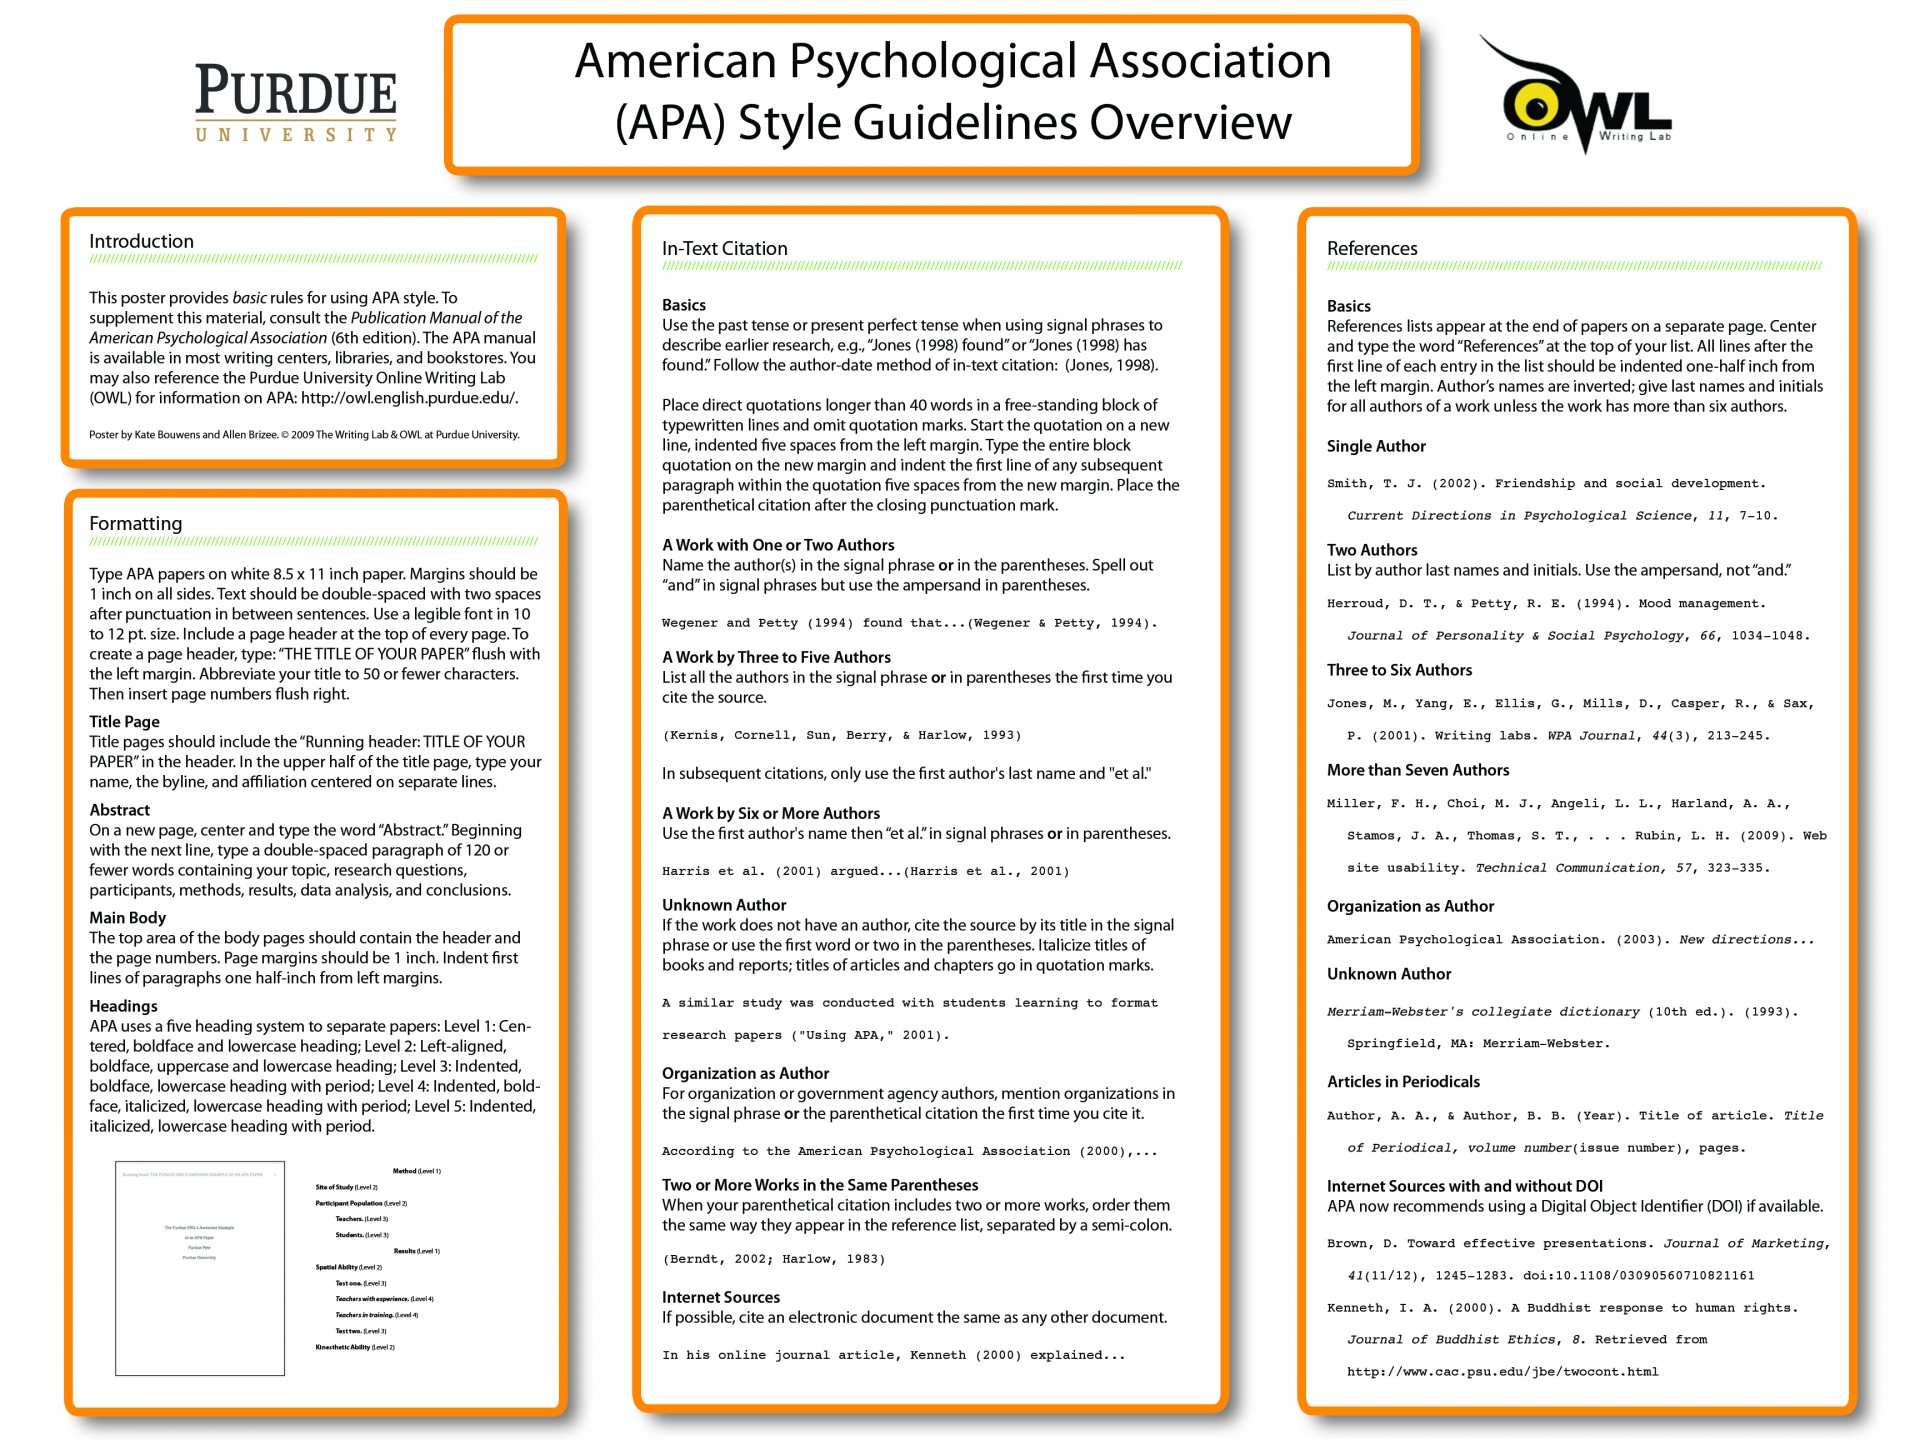 006 Research Paperposter09 Citing Papers Breathtaking Apa Paper Sources In Paragraph Citation 1920